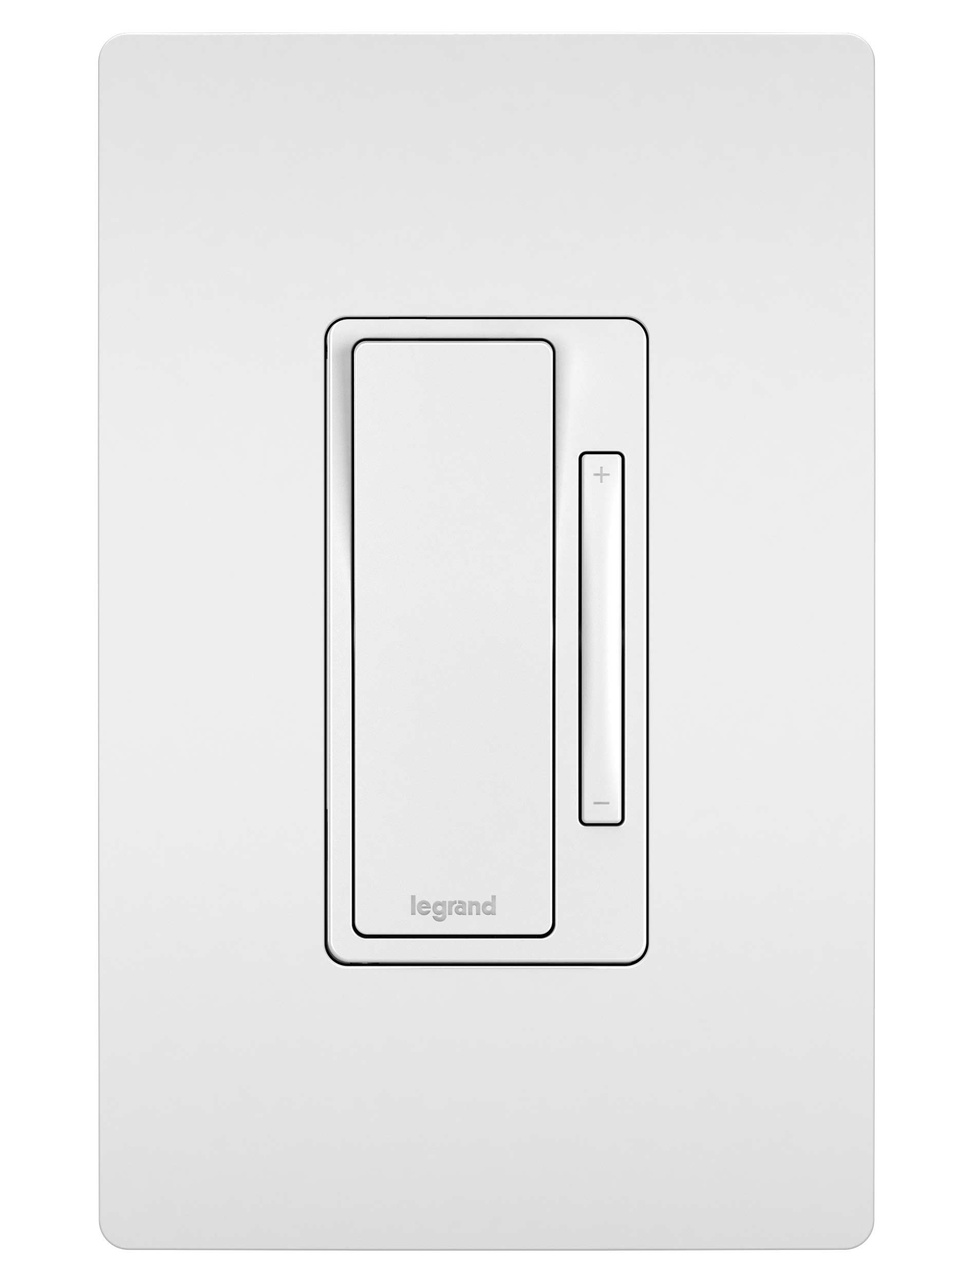 hight resolution of 120v multi location remote dimmer white